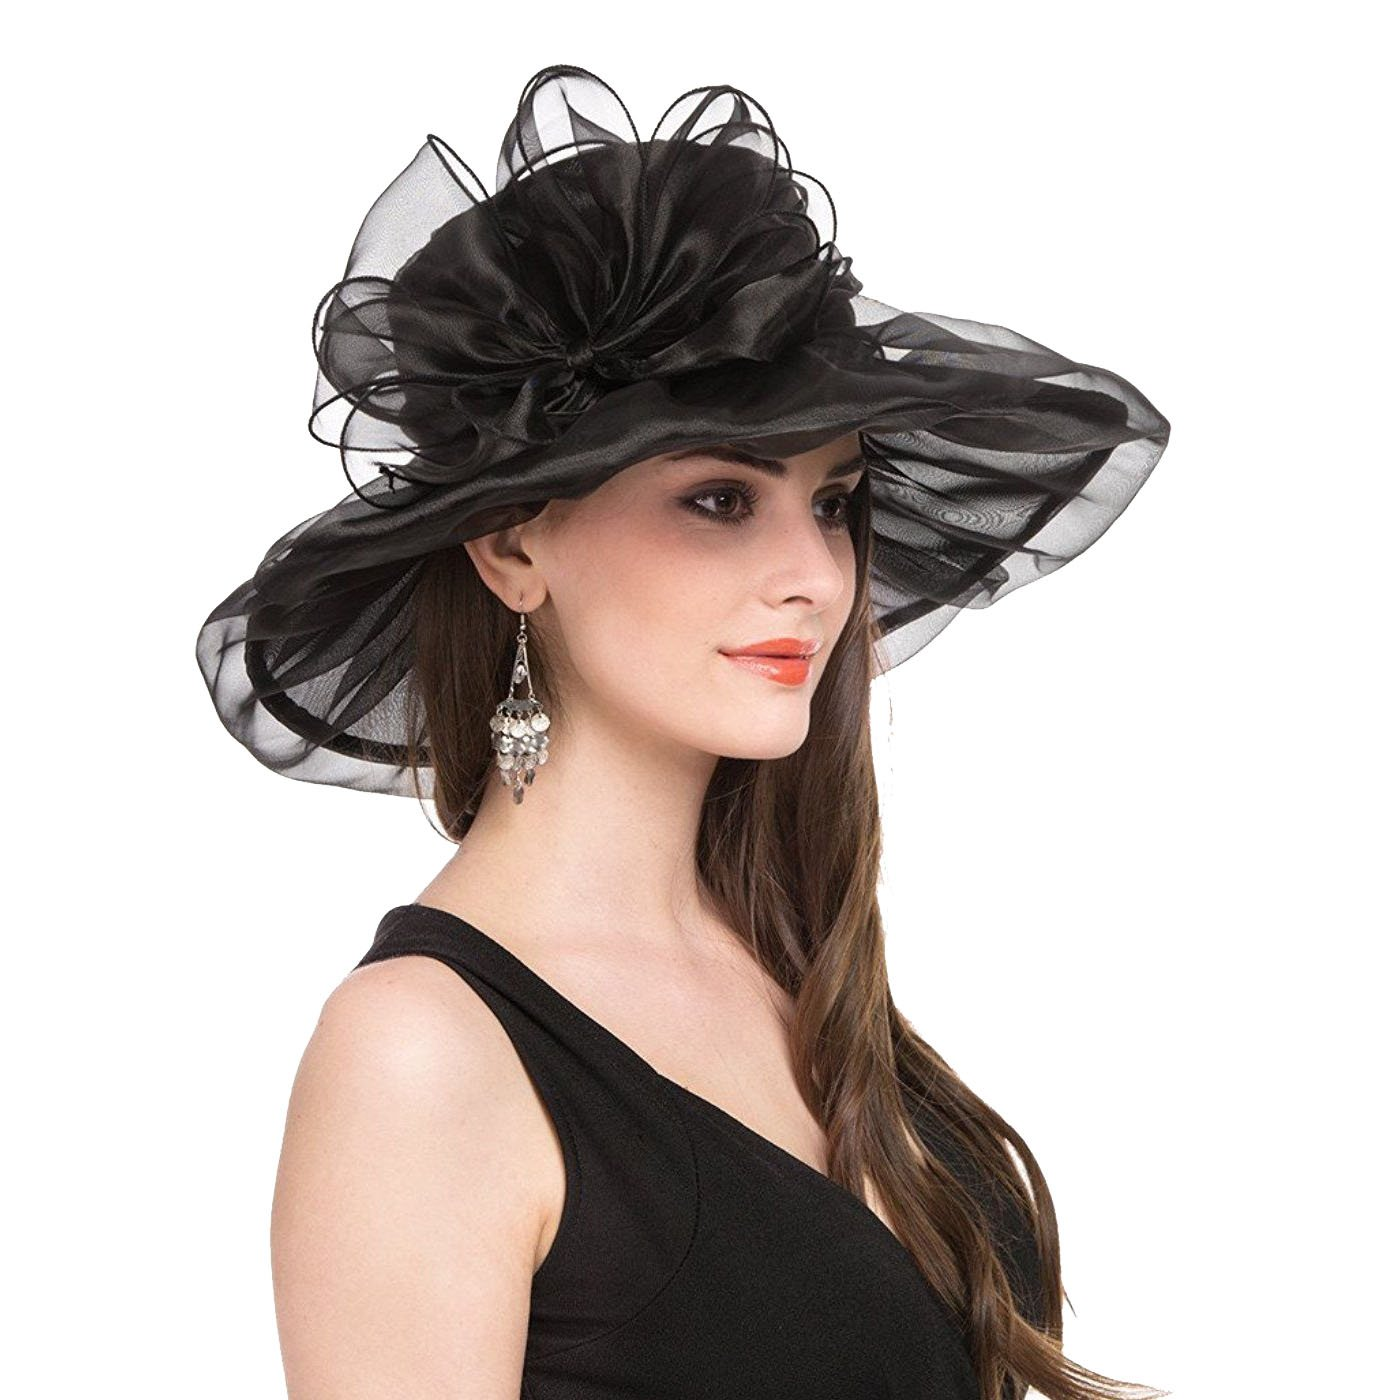 Women's Organza Kentucky Derby Church Fascinator Bridal Cap Wide Brim Hat for Tea Party Wedding (Hat 1 Black)